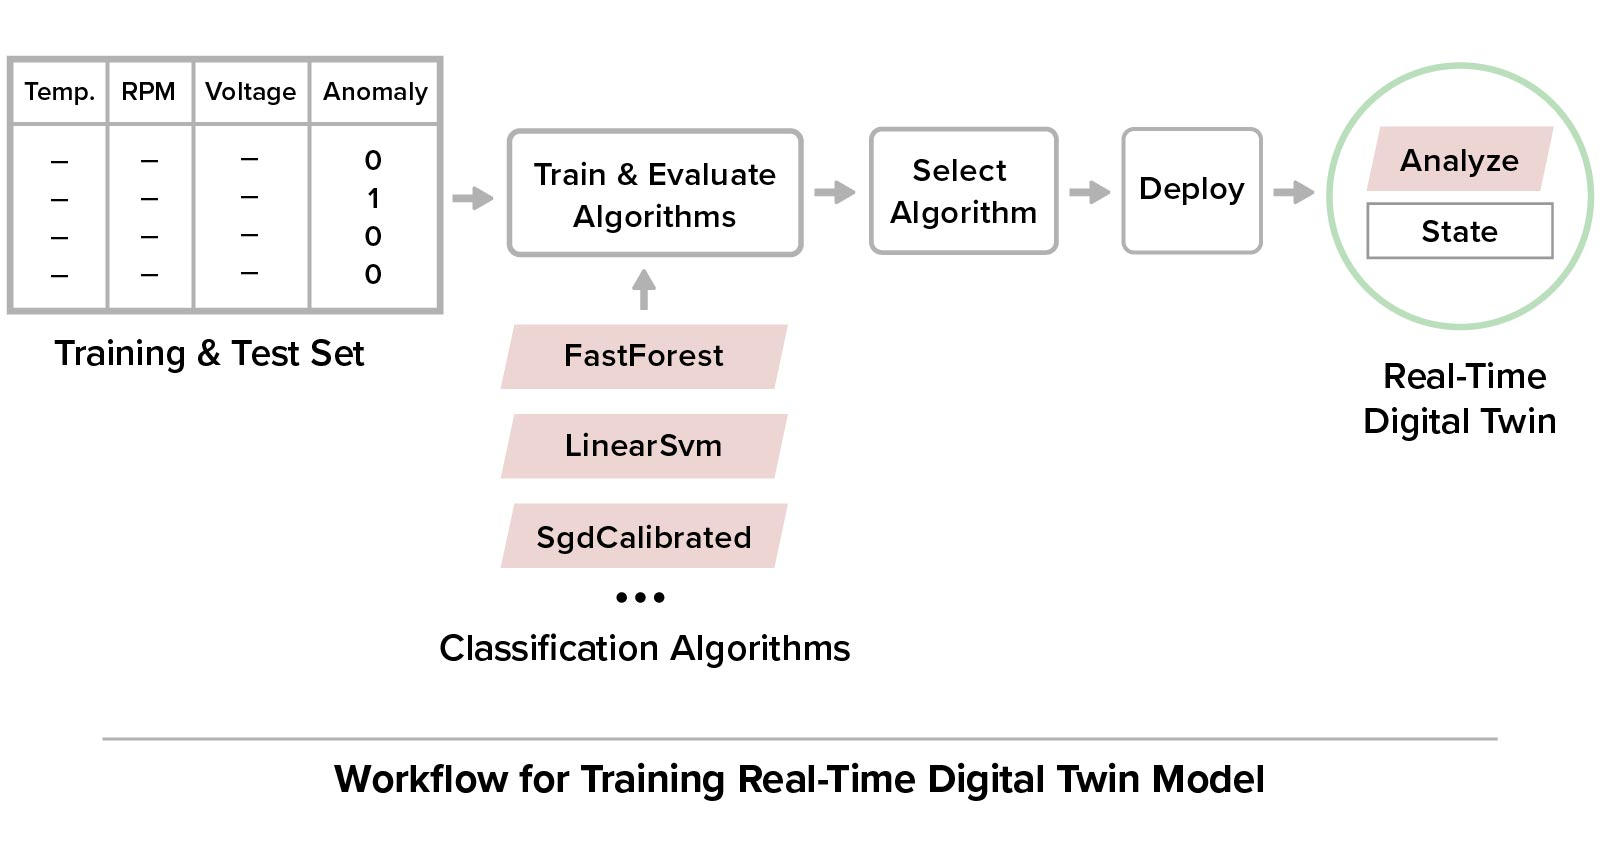 Using supervised learning, users train an ML algorithm for deployment in a real-time digital twin.